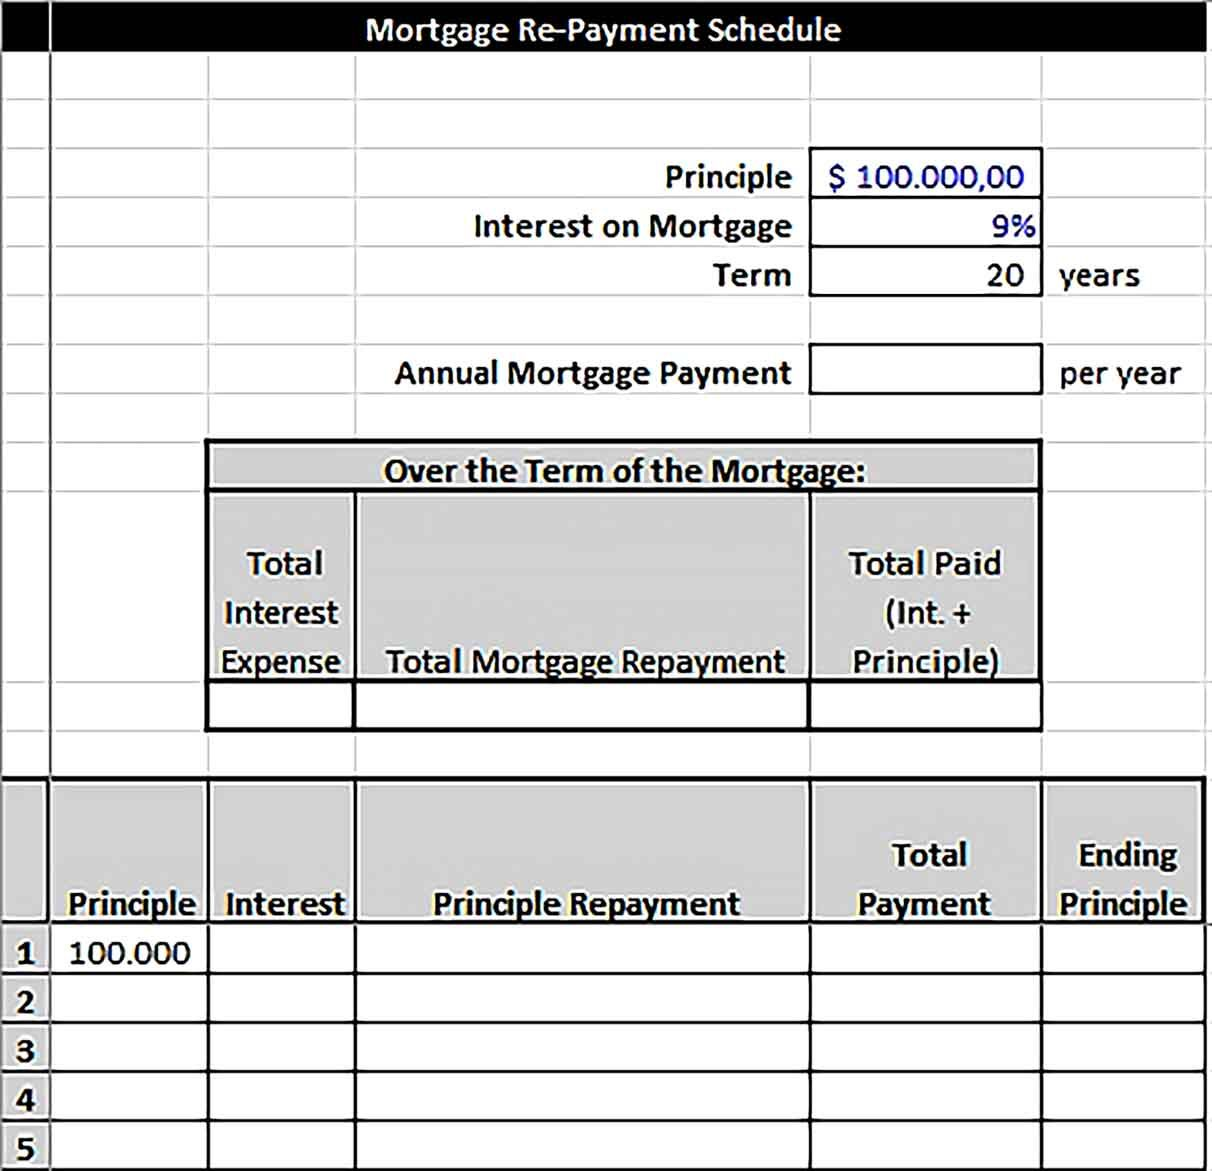 Sample Mortgage Payment Schedule In 2020 Payment Schedule Mortgage Payment Schedule Template